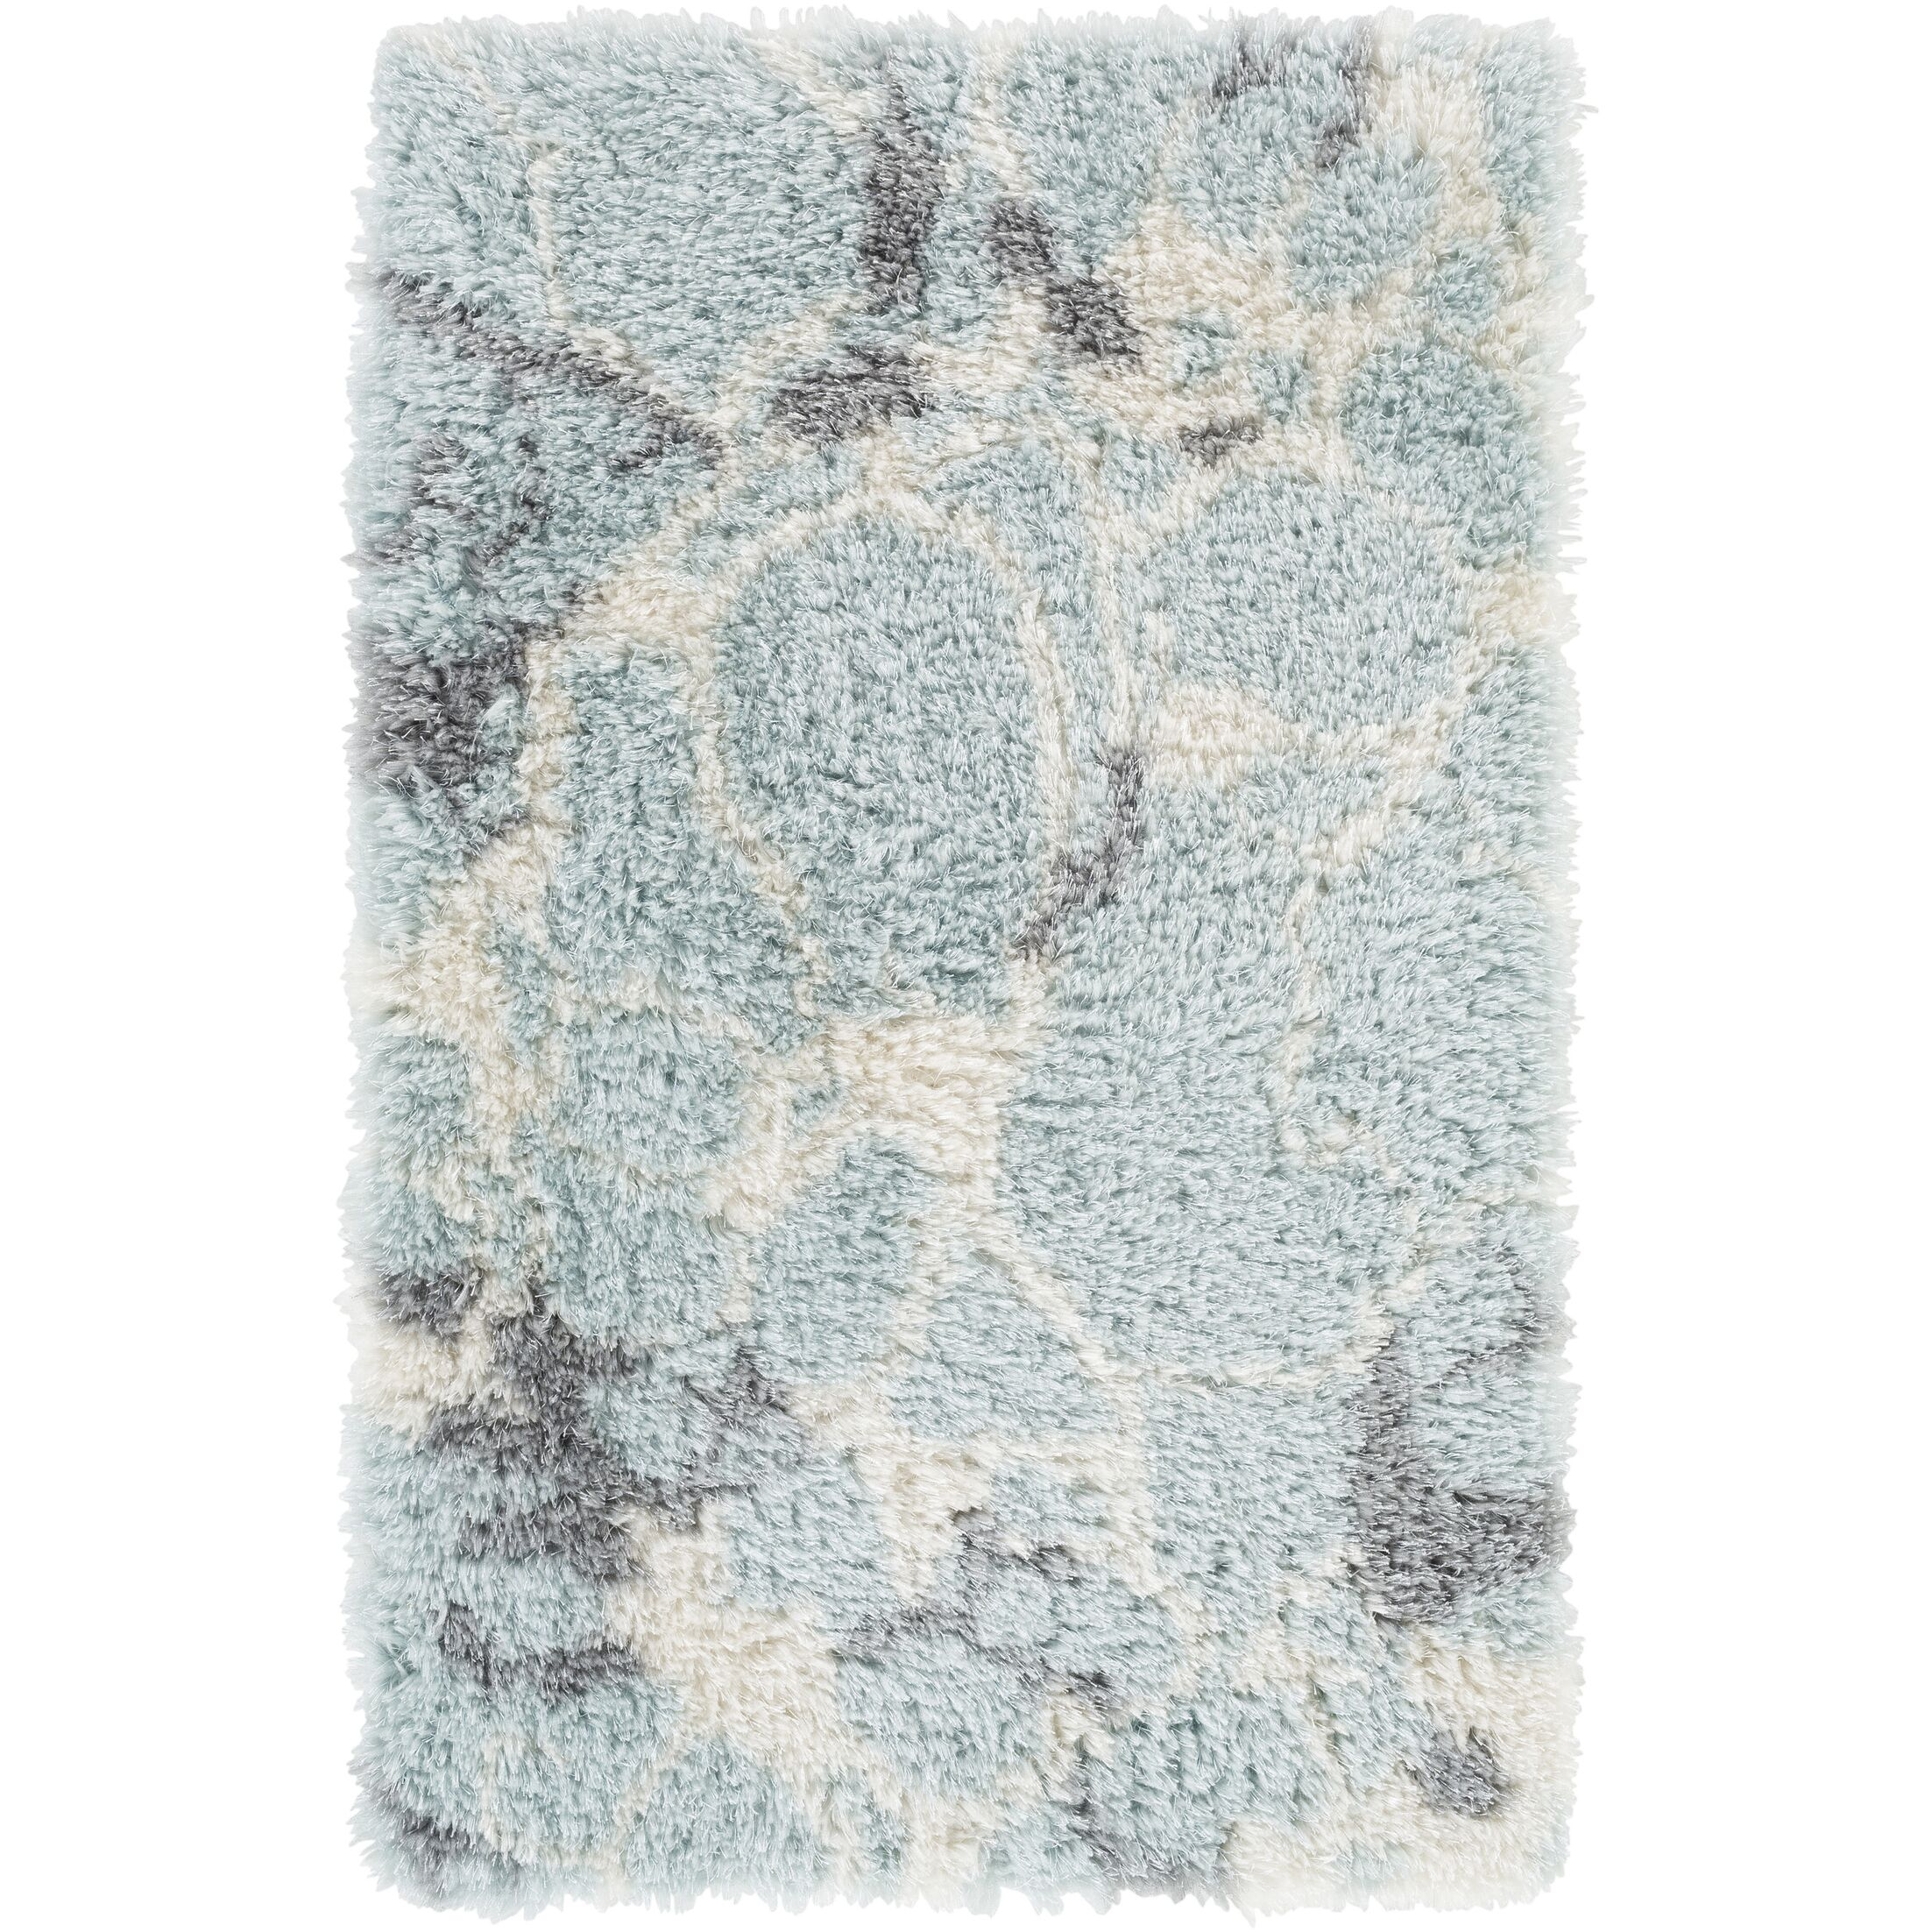 Keith Blue/White Area Rug Rug Size: Rectangle 5' x 7'6